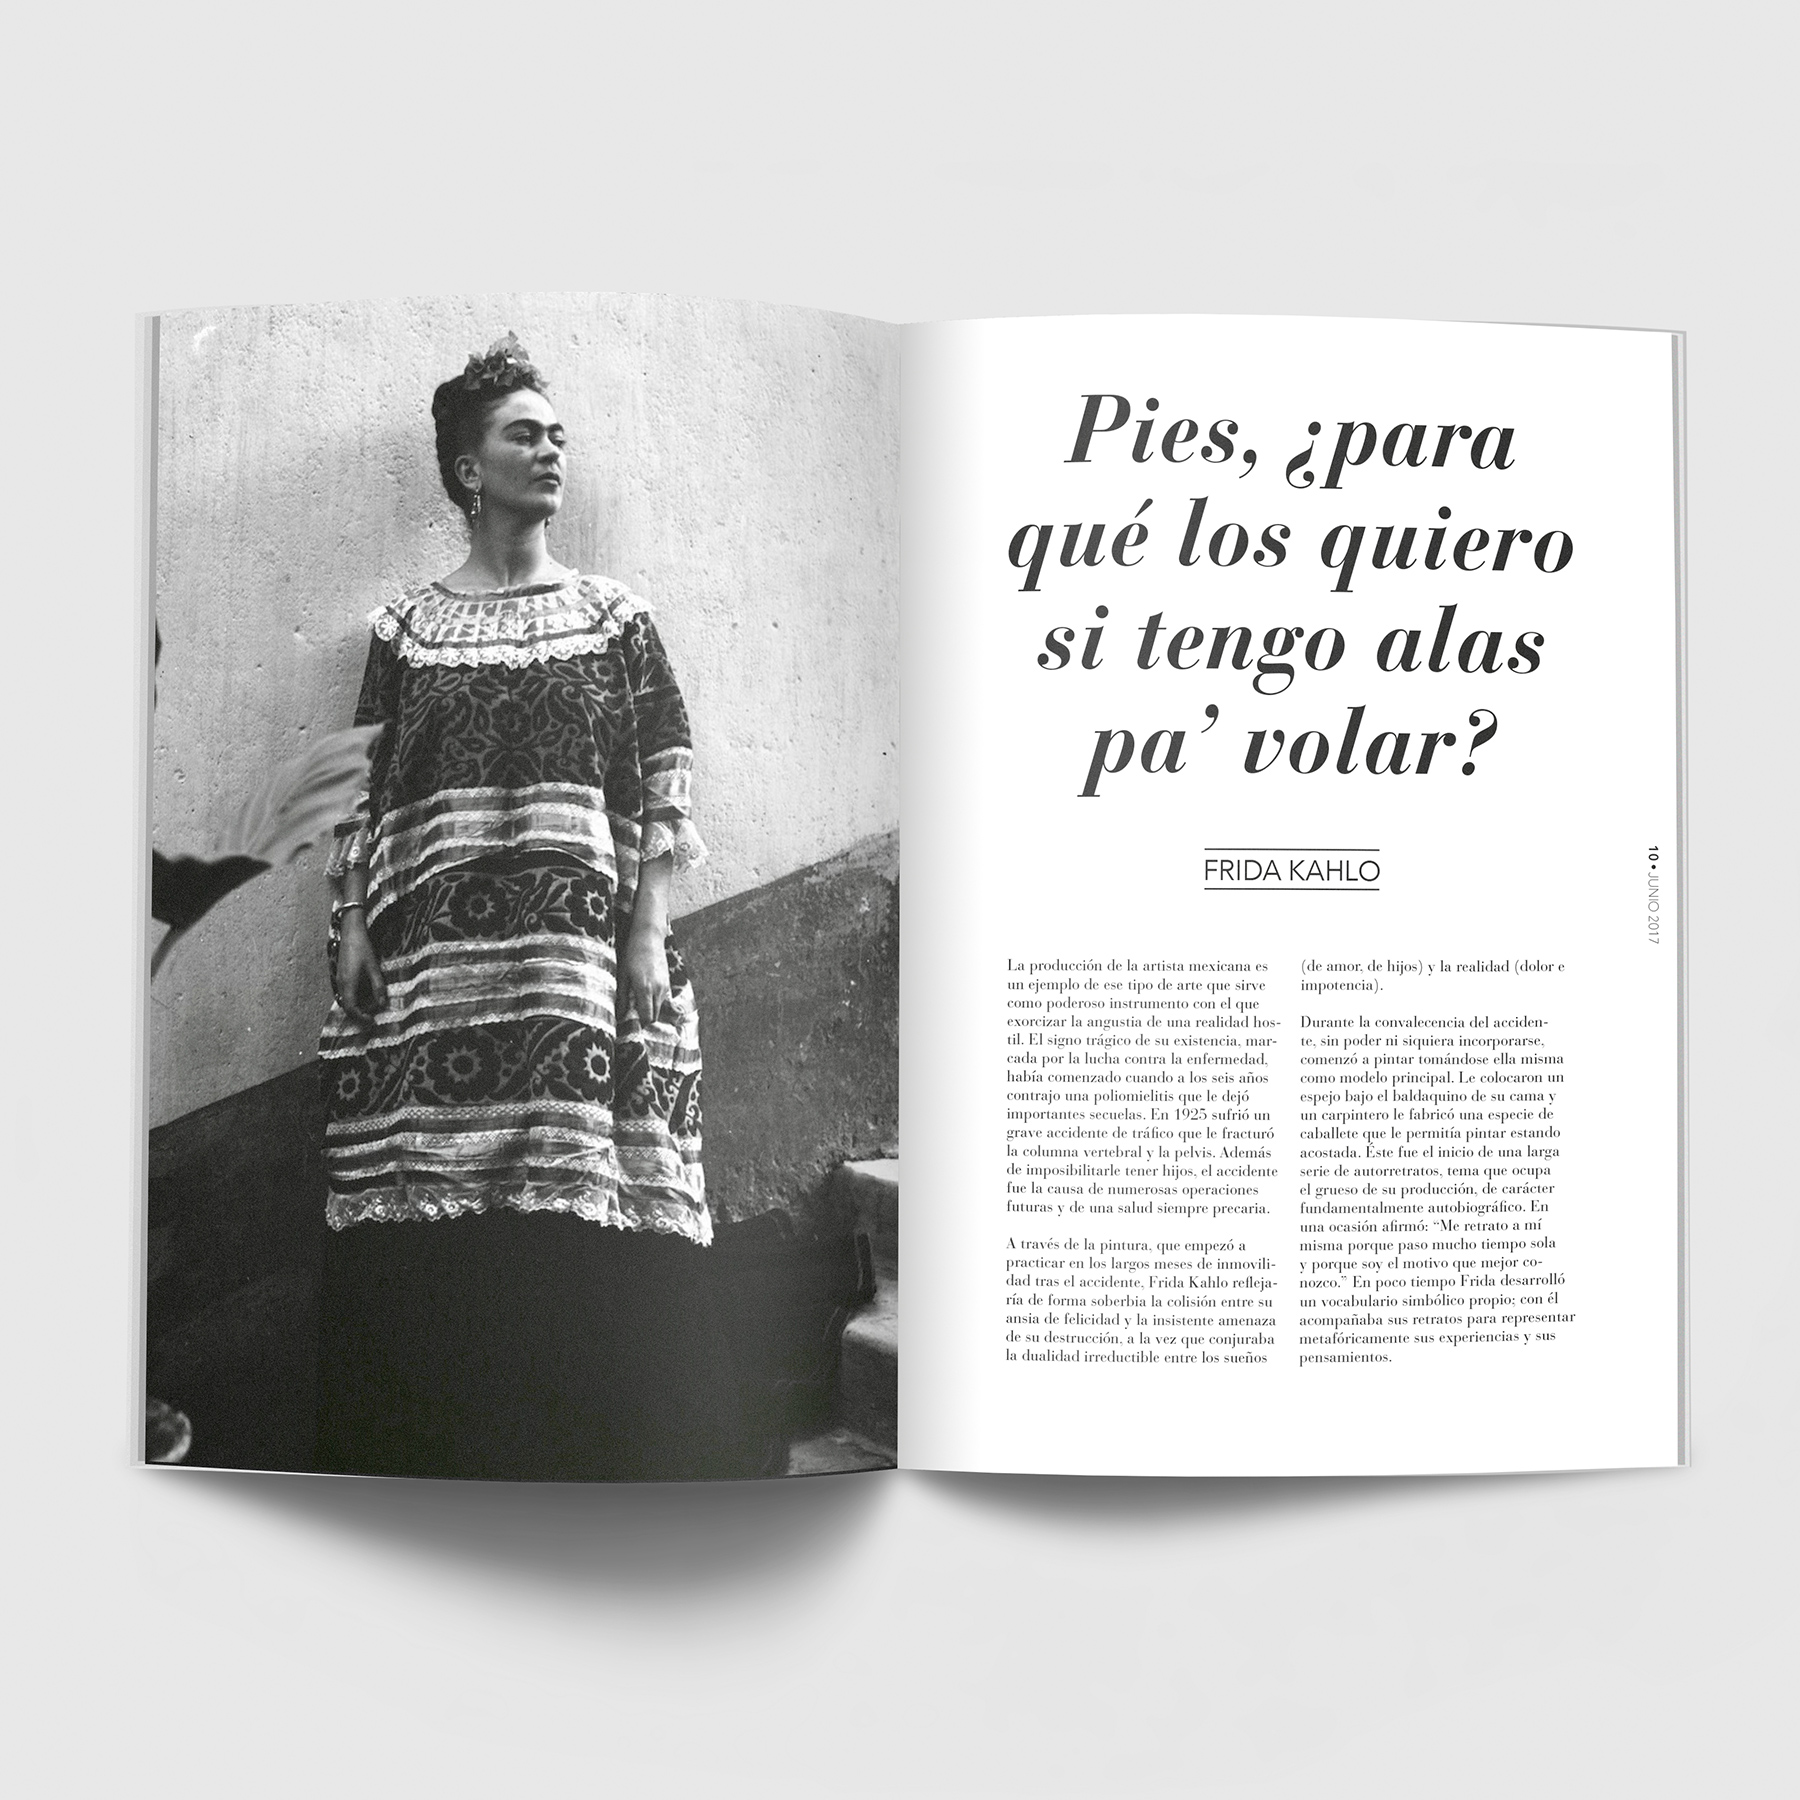 revista_hype_interior_frida